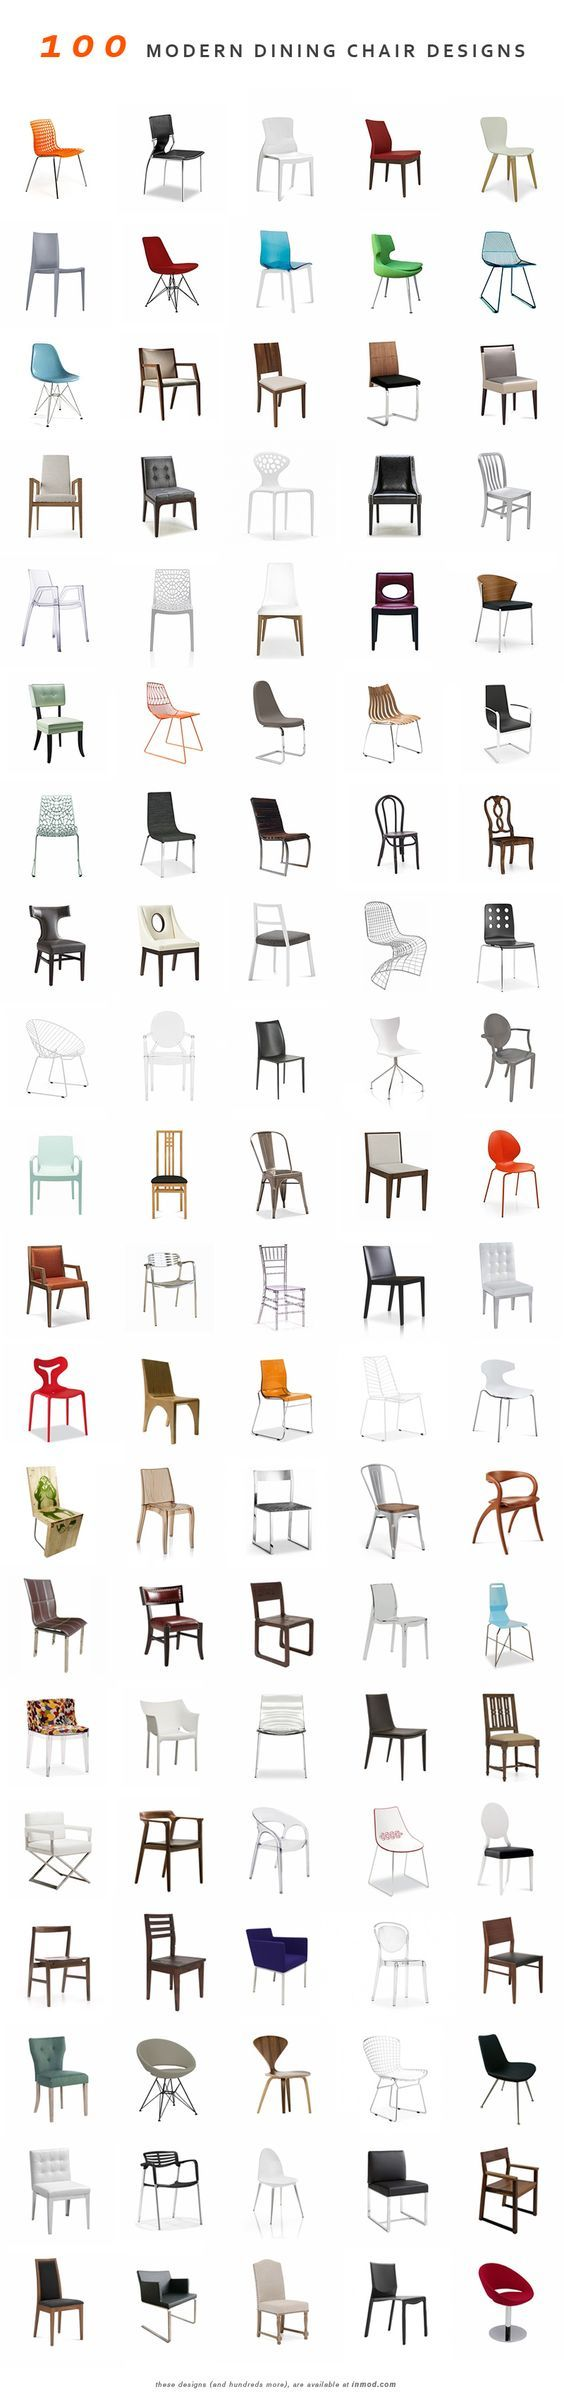 100 Modern Dining Chairs (and hundreds more) @ Inmod. We found the perfect table, but not chairs: